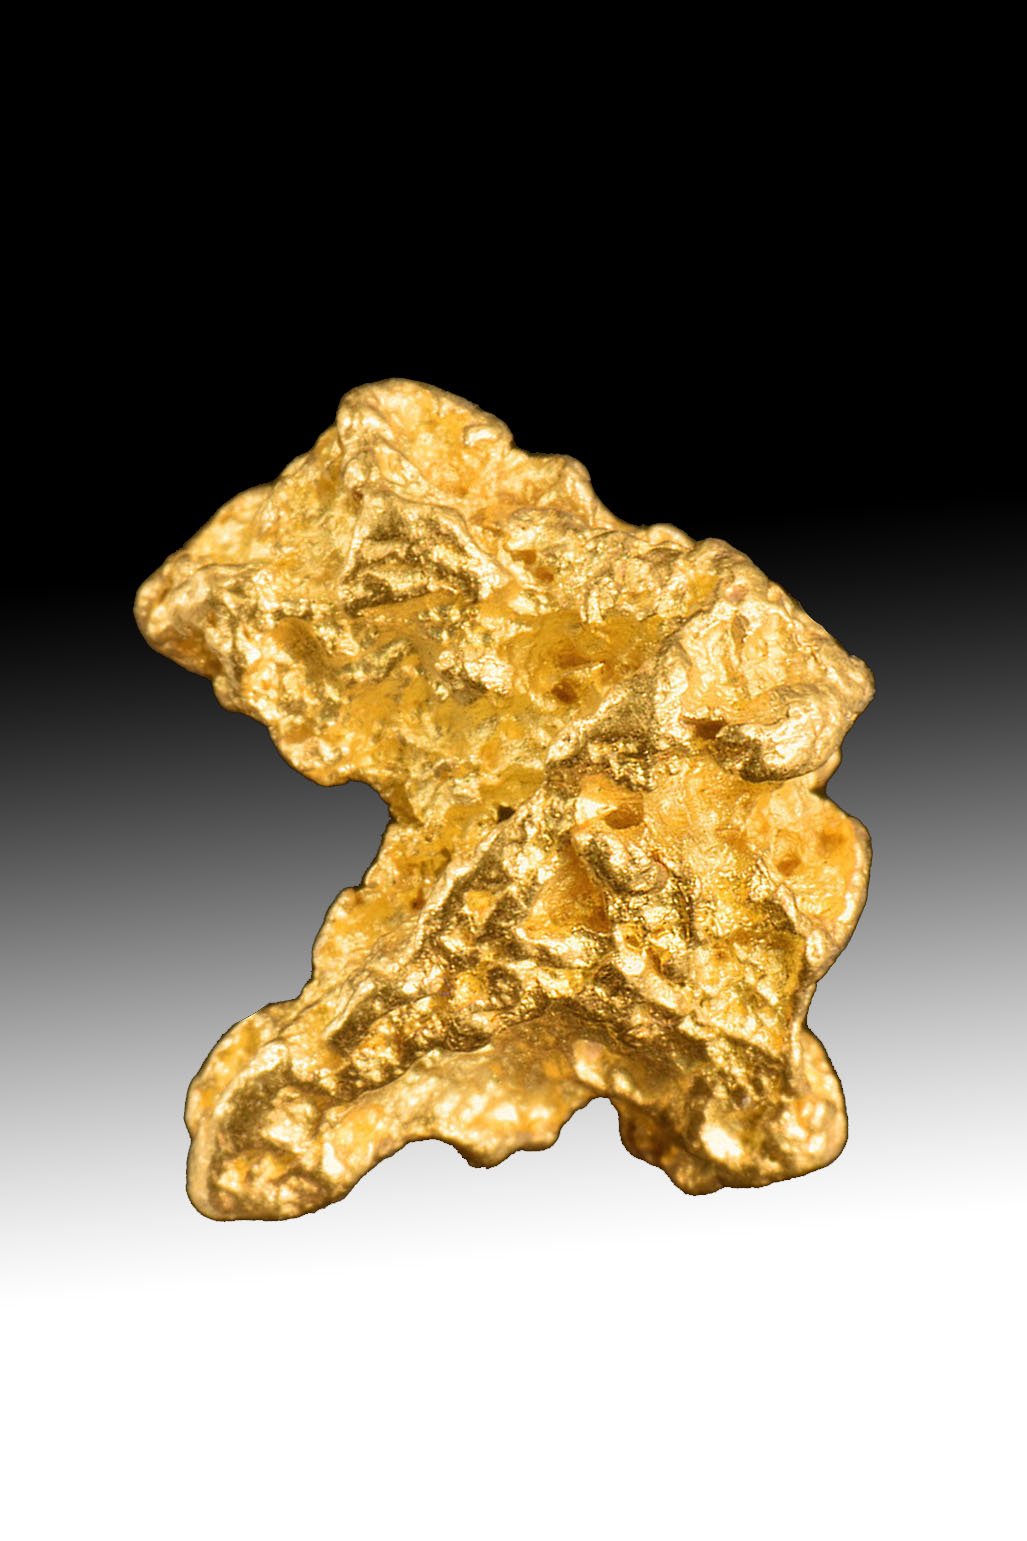 Defined and Unique Shape - Jewelry Grade Australian Gold nugget